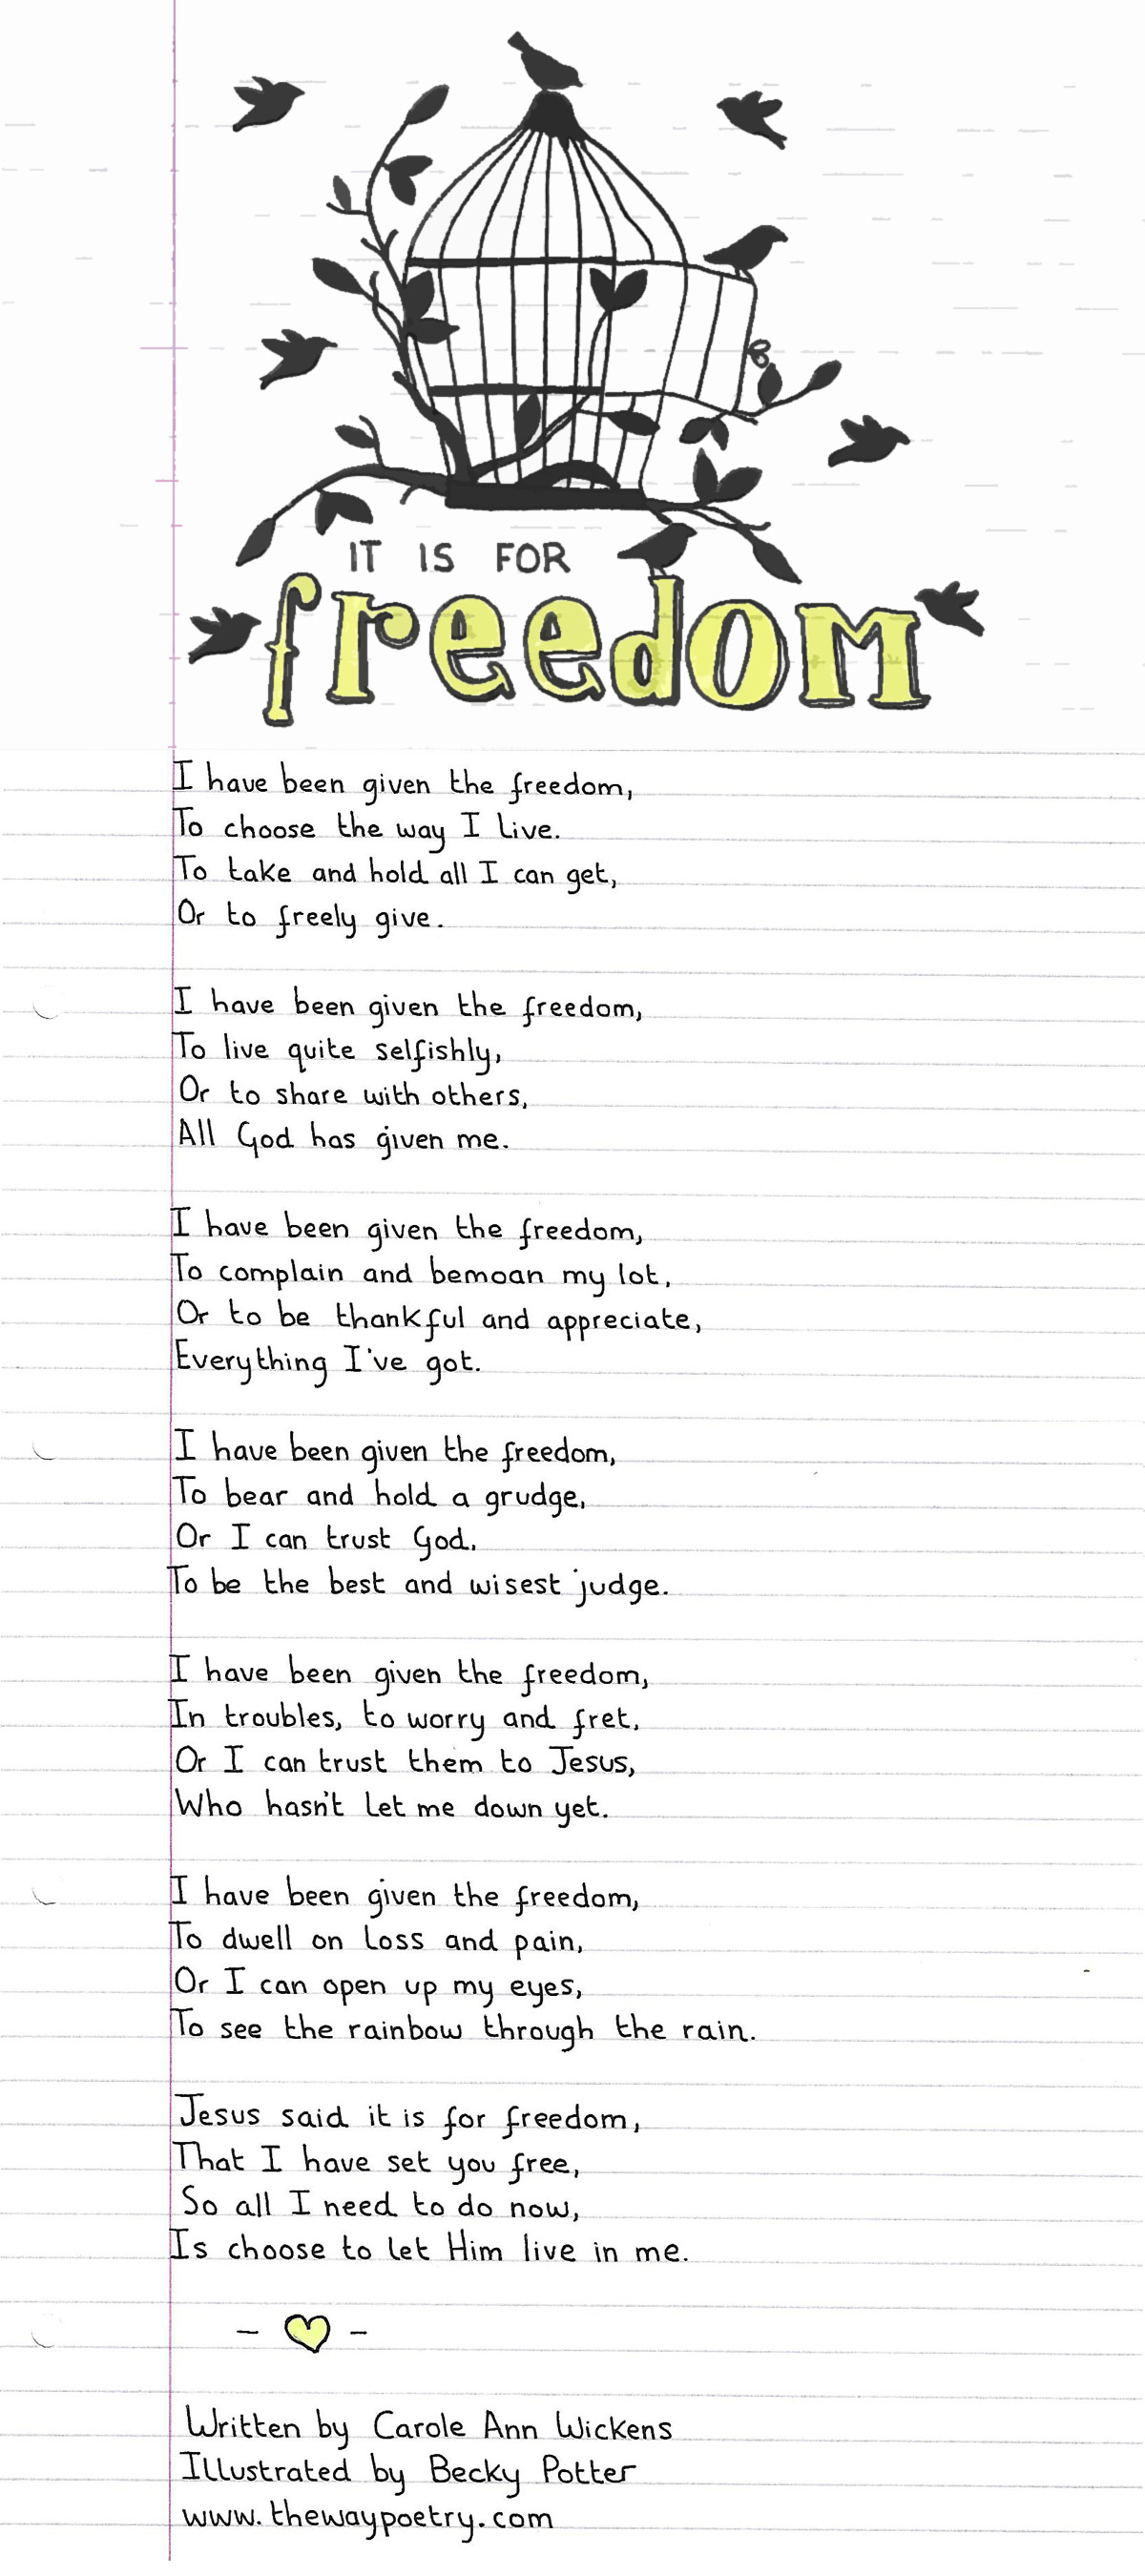 It Is For Freedom by Carole Ann Wickens